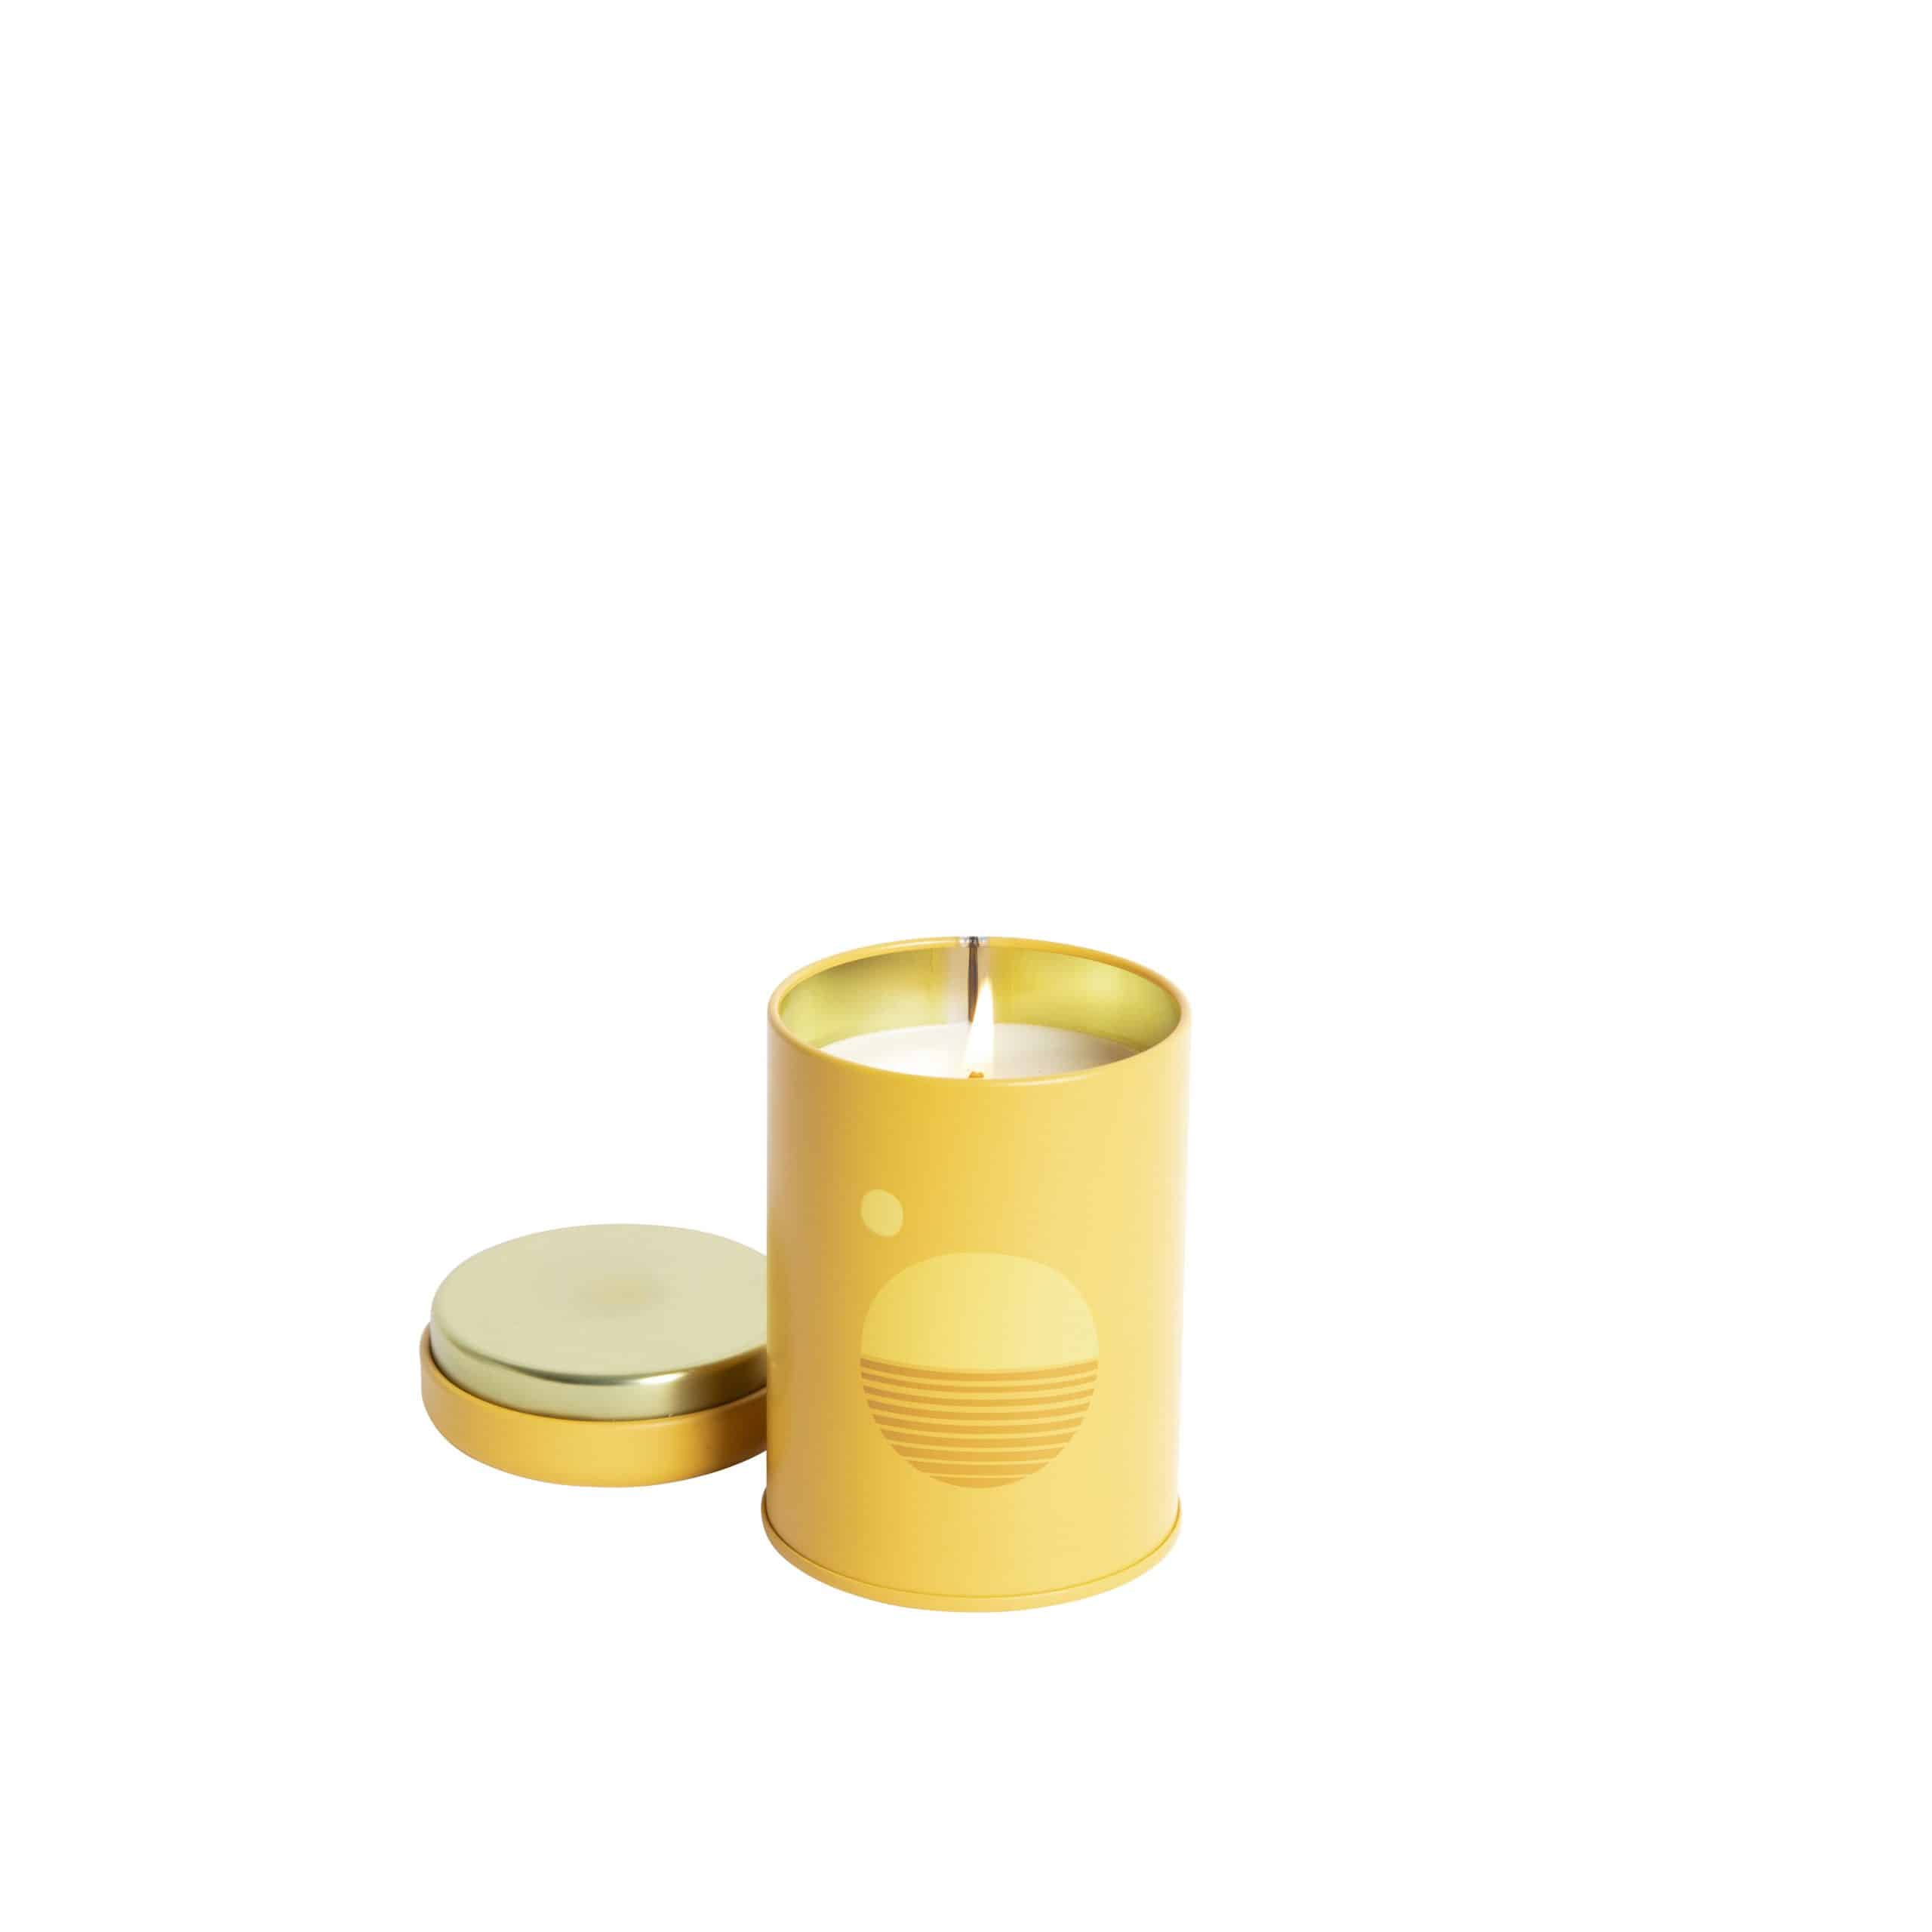 Golden Hour – 10 oz Sunset Soy Candle